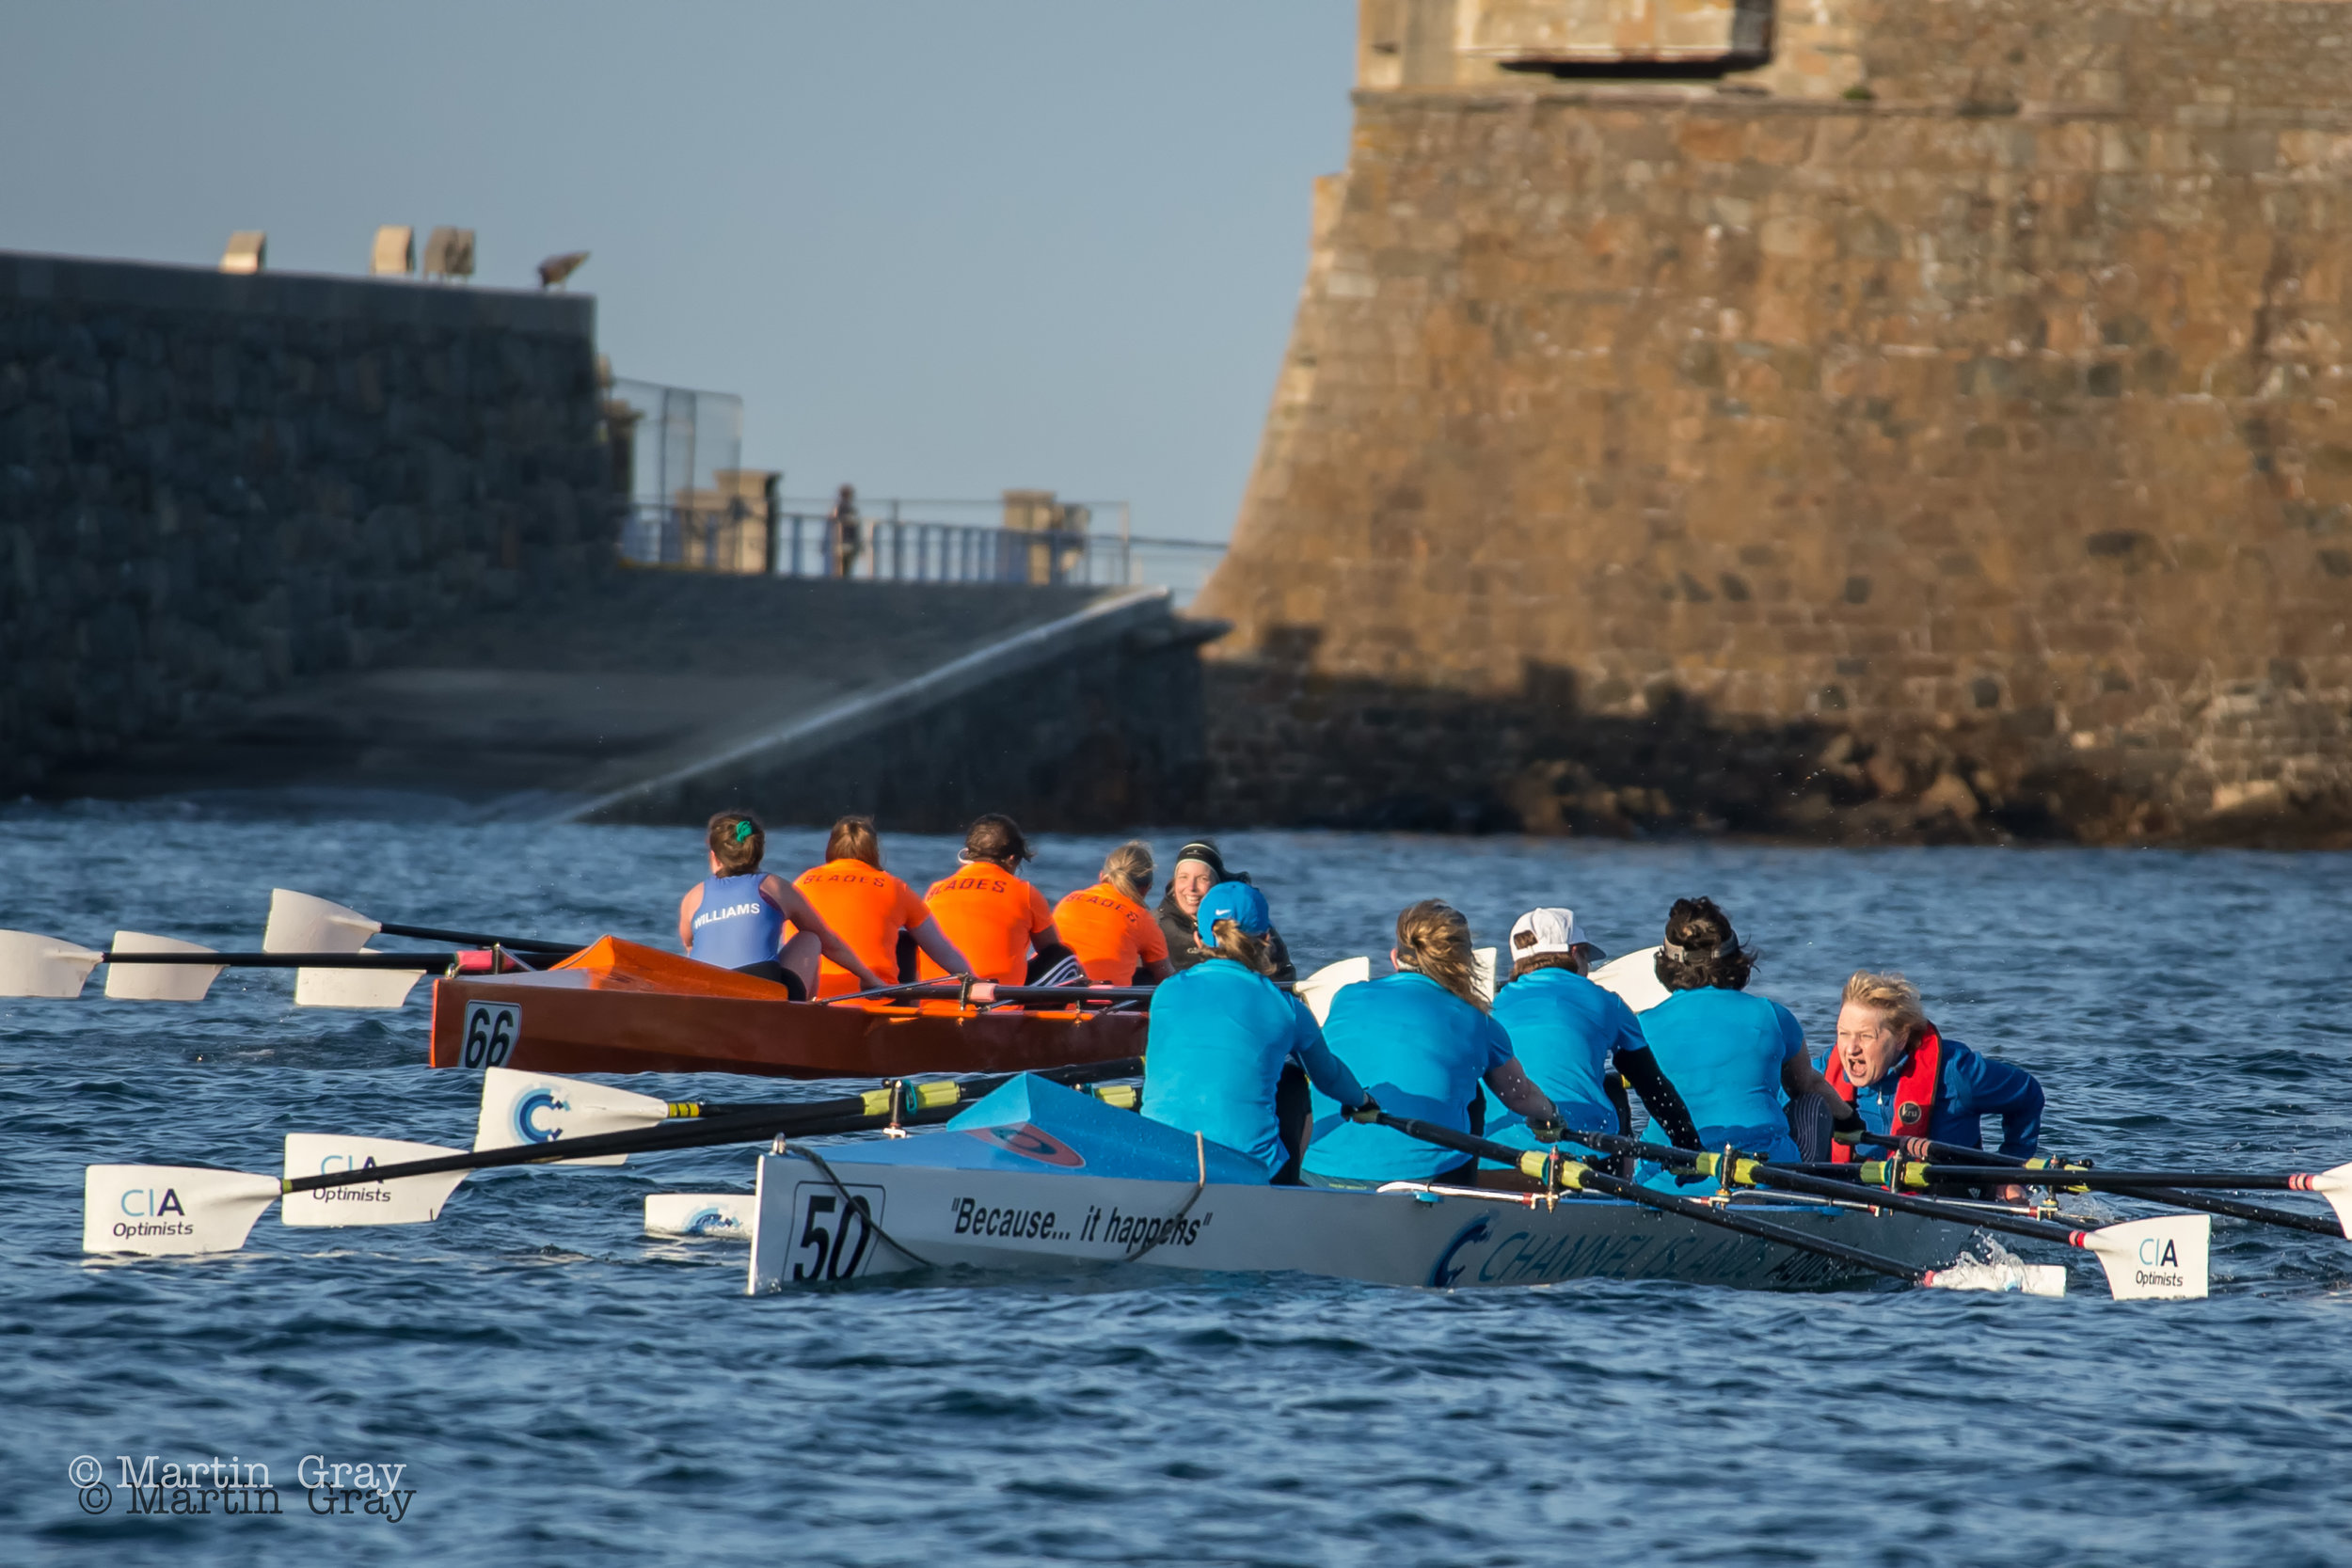 Guernsey Rowing Club - Course B Race May 3rd 2019… A first visit to catch what looks like a fab sport! Her's the final set… Enjoy!